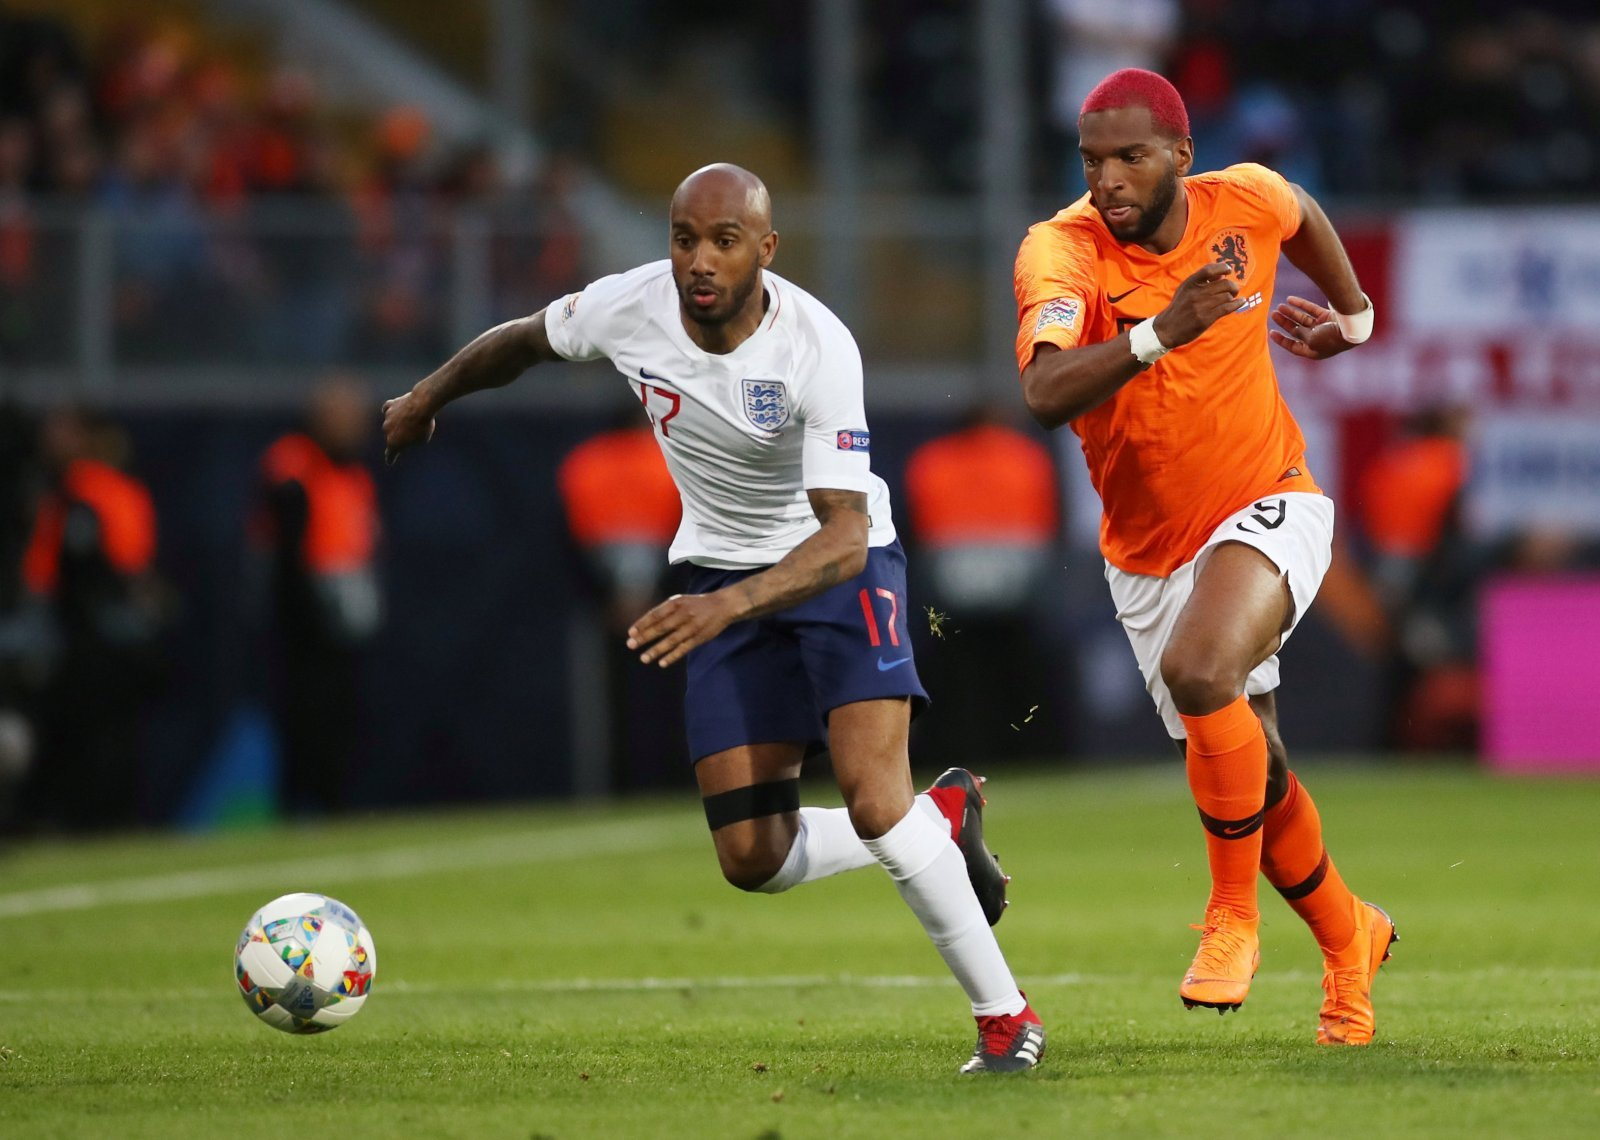 Everton: Fabian Delph passed fit to start Lincoln City cup clash